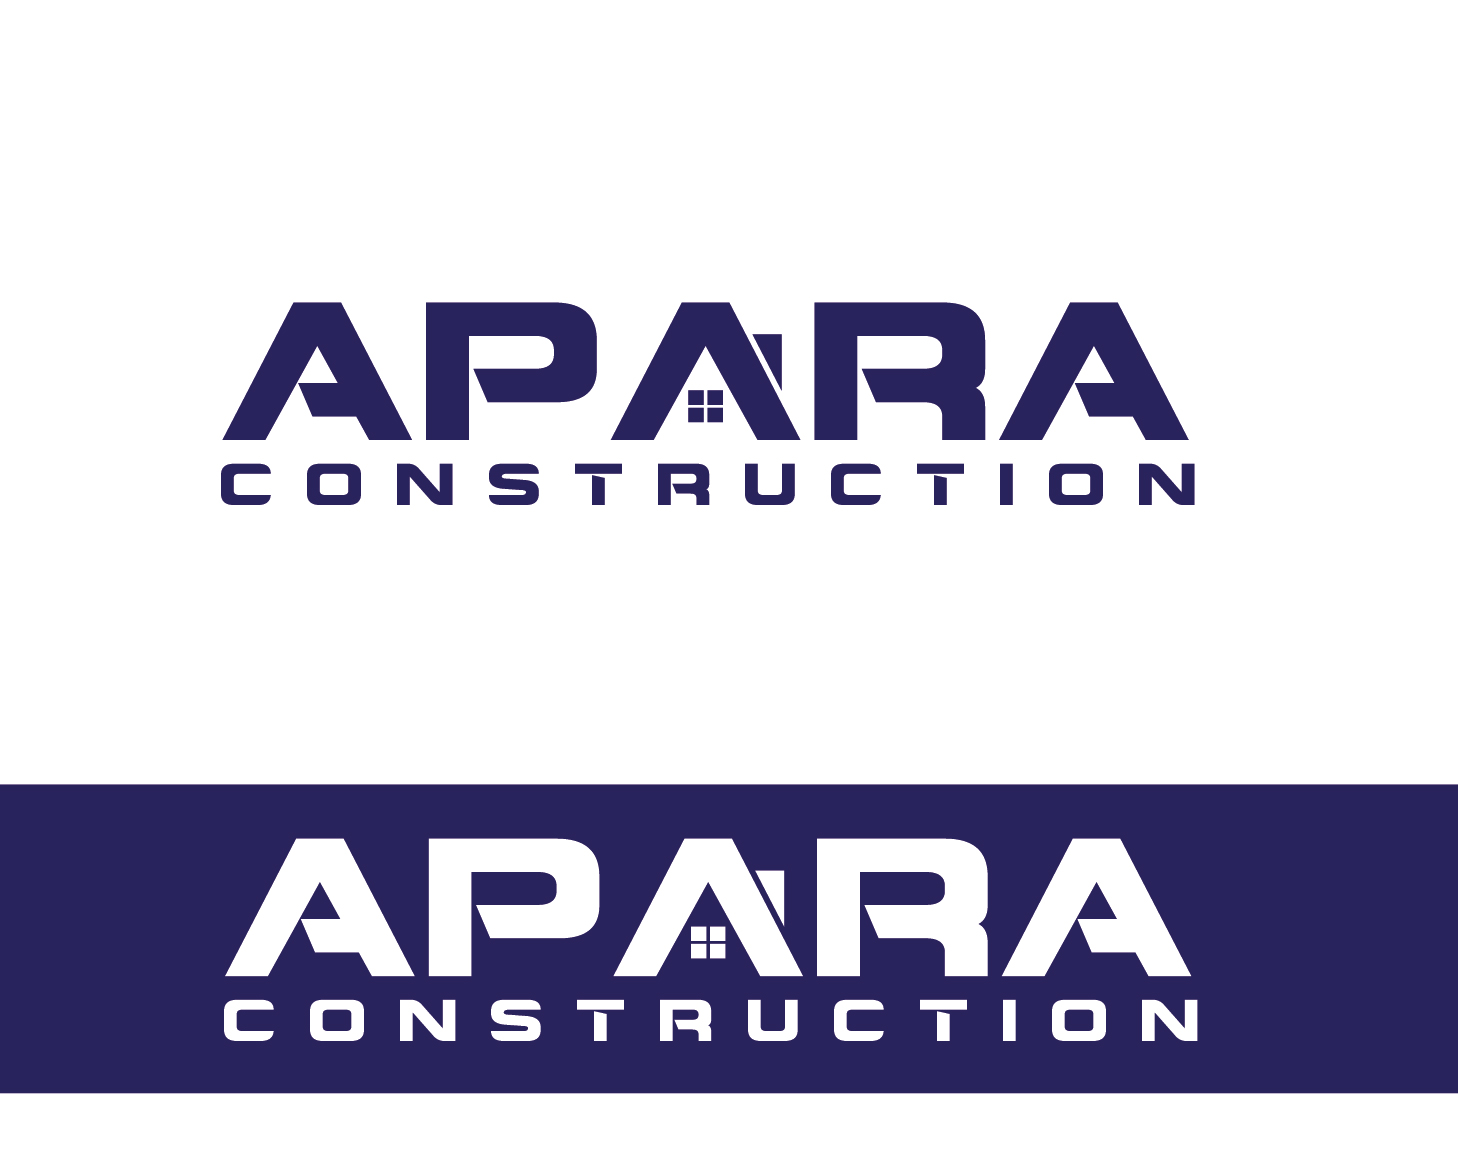 Logo Design by VENTSISLAV KOVACHEV - Entry No. 18 in the Logo Design Contest Apara Construction Logo Design.